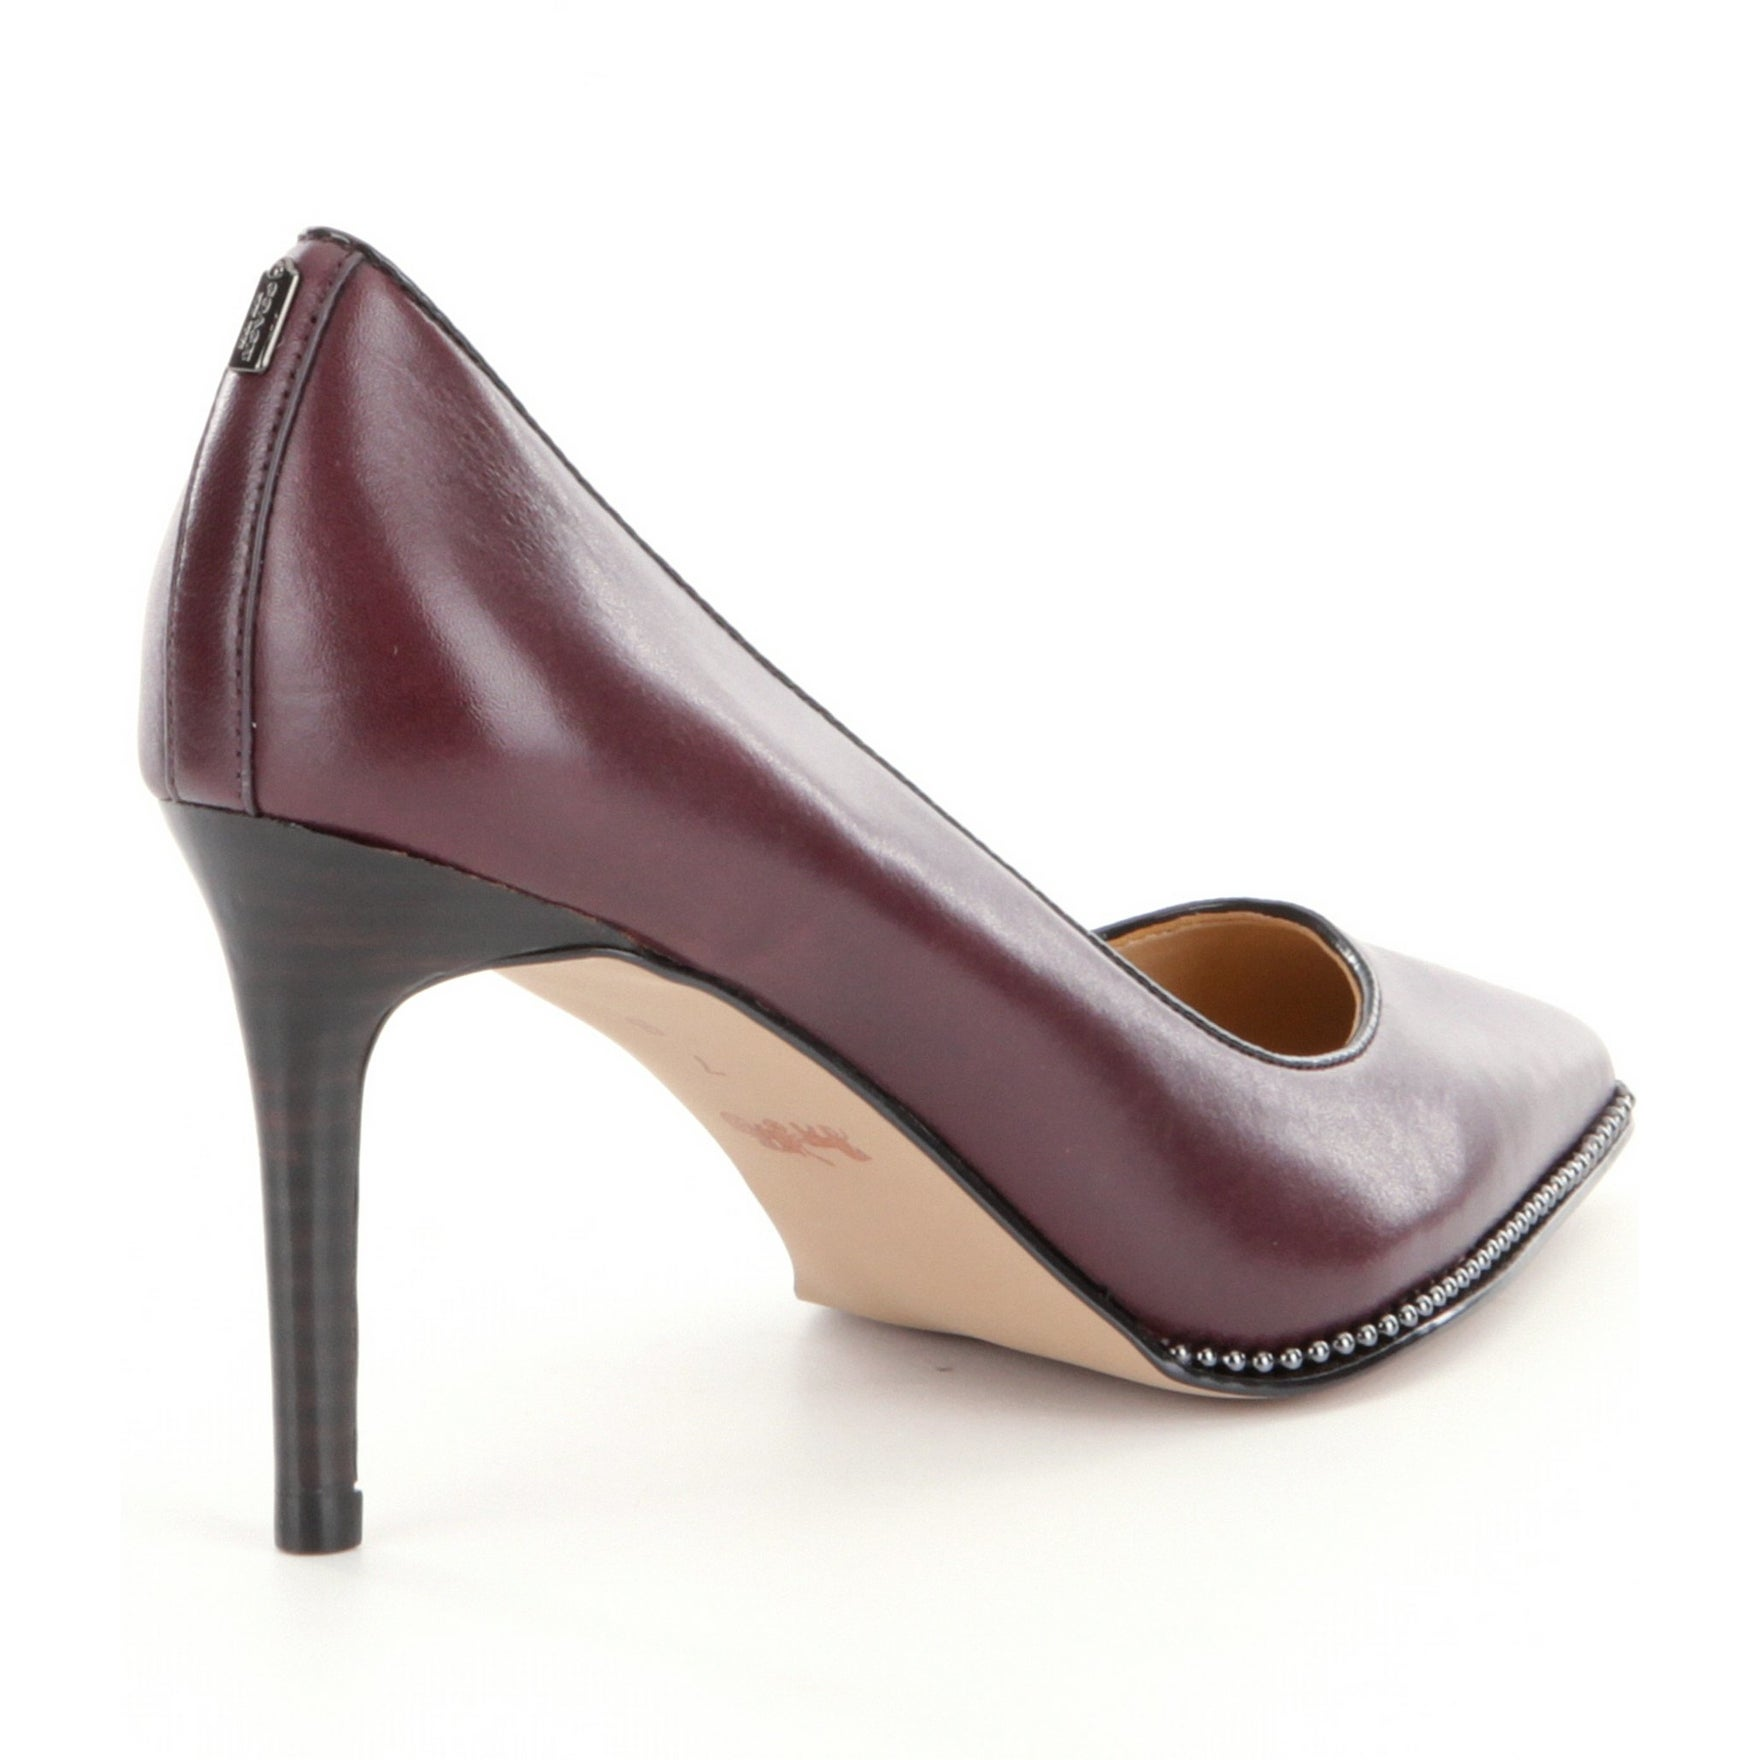 8d0735b9414 Shop Coach Womens Vonna Pointed Toe Classic Pumps - Free Shipping Today -  Overstock - 17127894